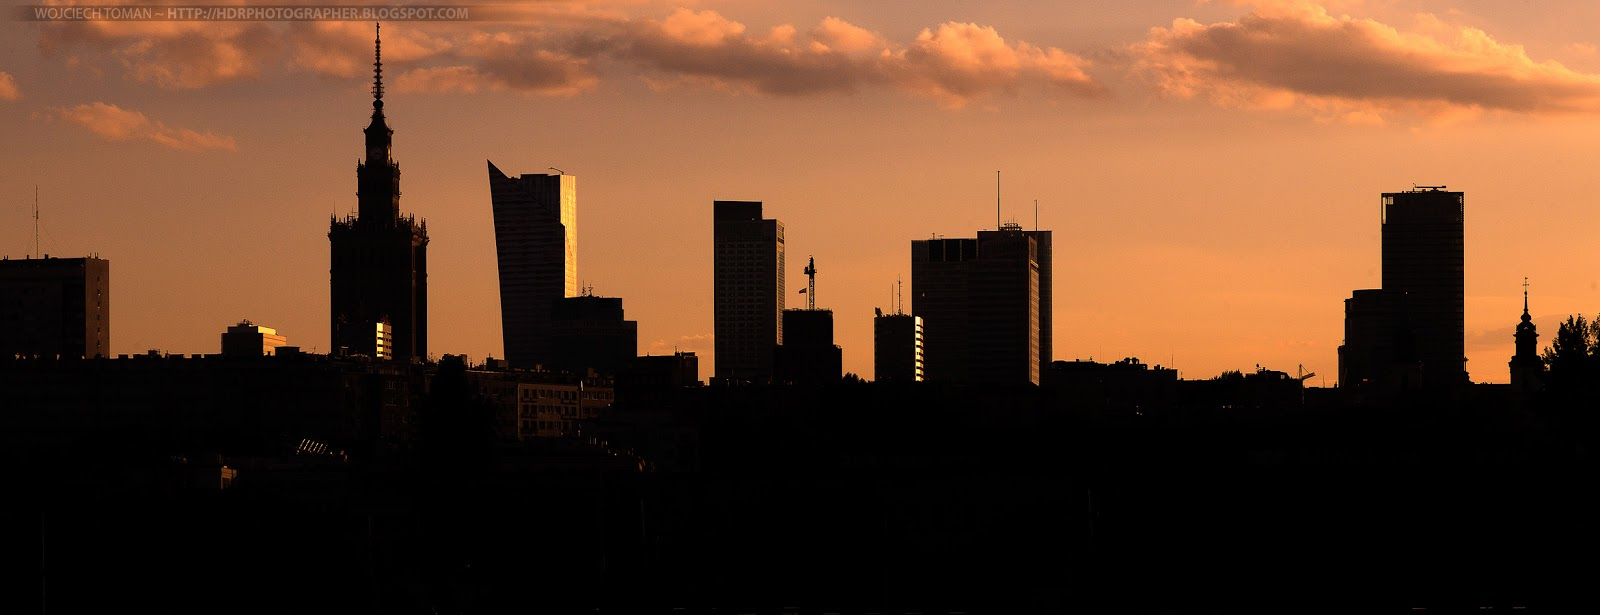 Silhouettes of skyscrapers in Warsaw